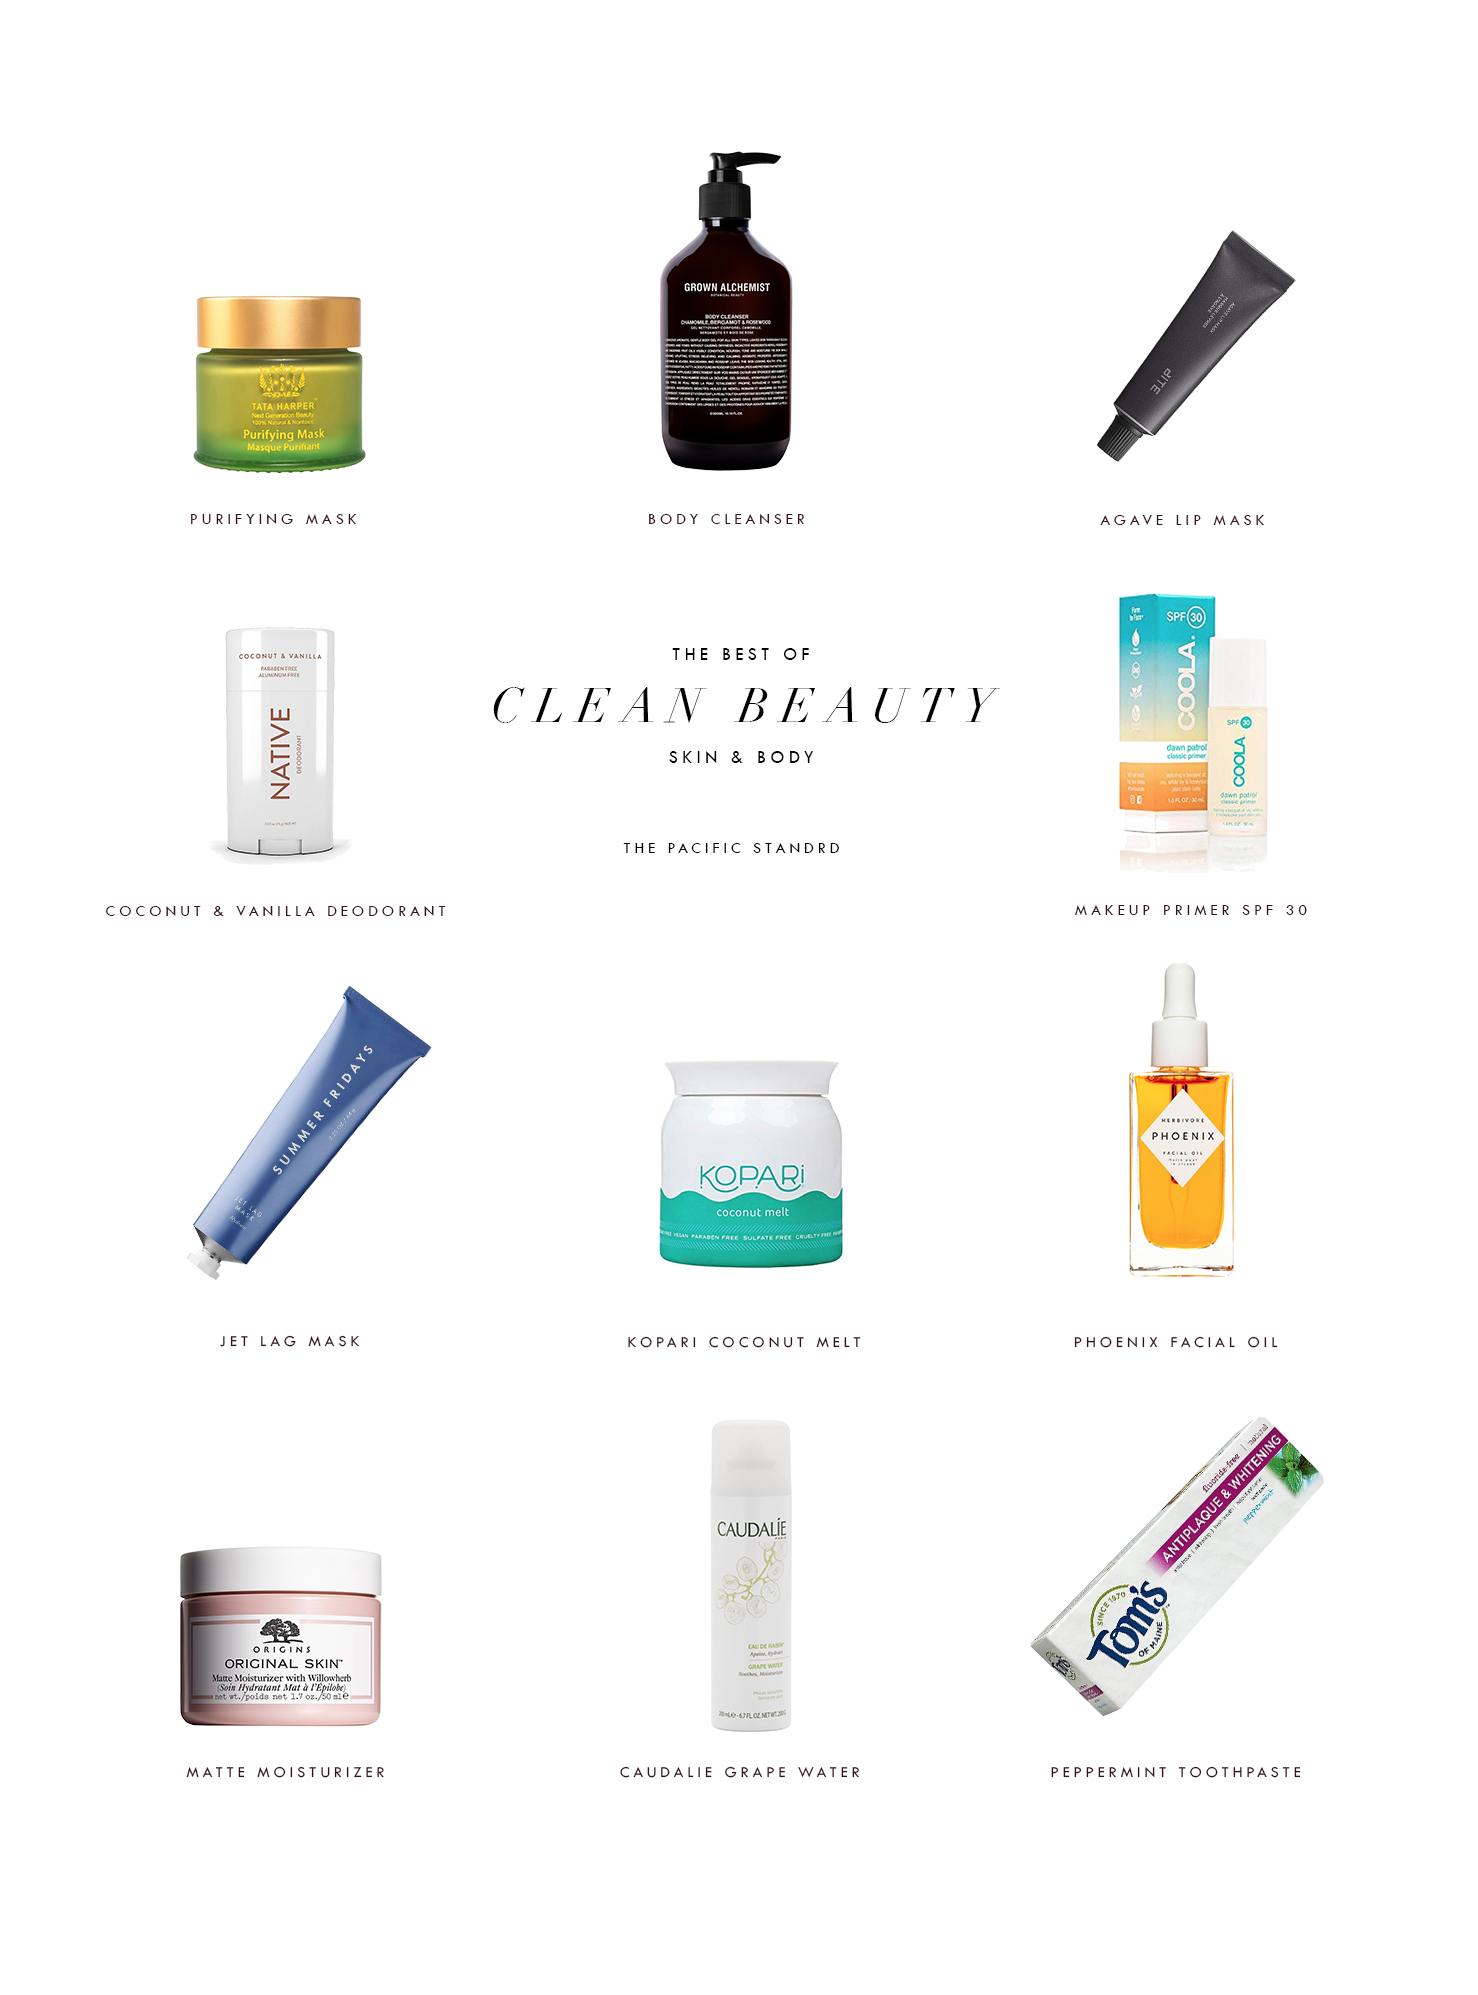 Best of Clean Beauty - Skin & Body Care Products via. The Pacific Standard | www.thepacficstandard.com